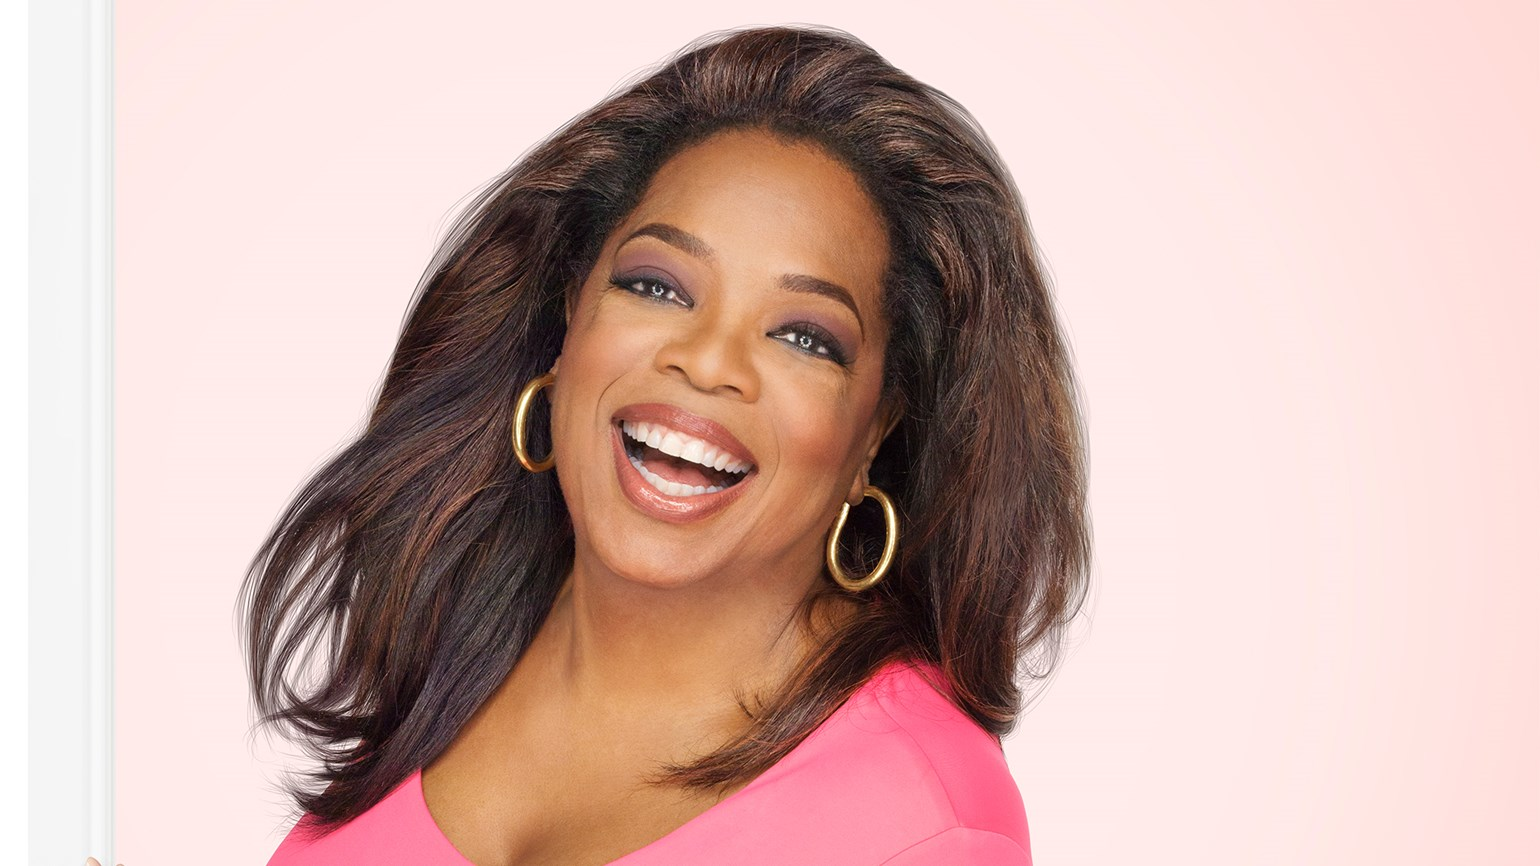 Holland America partners with Oprah's magazine